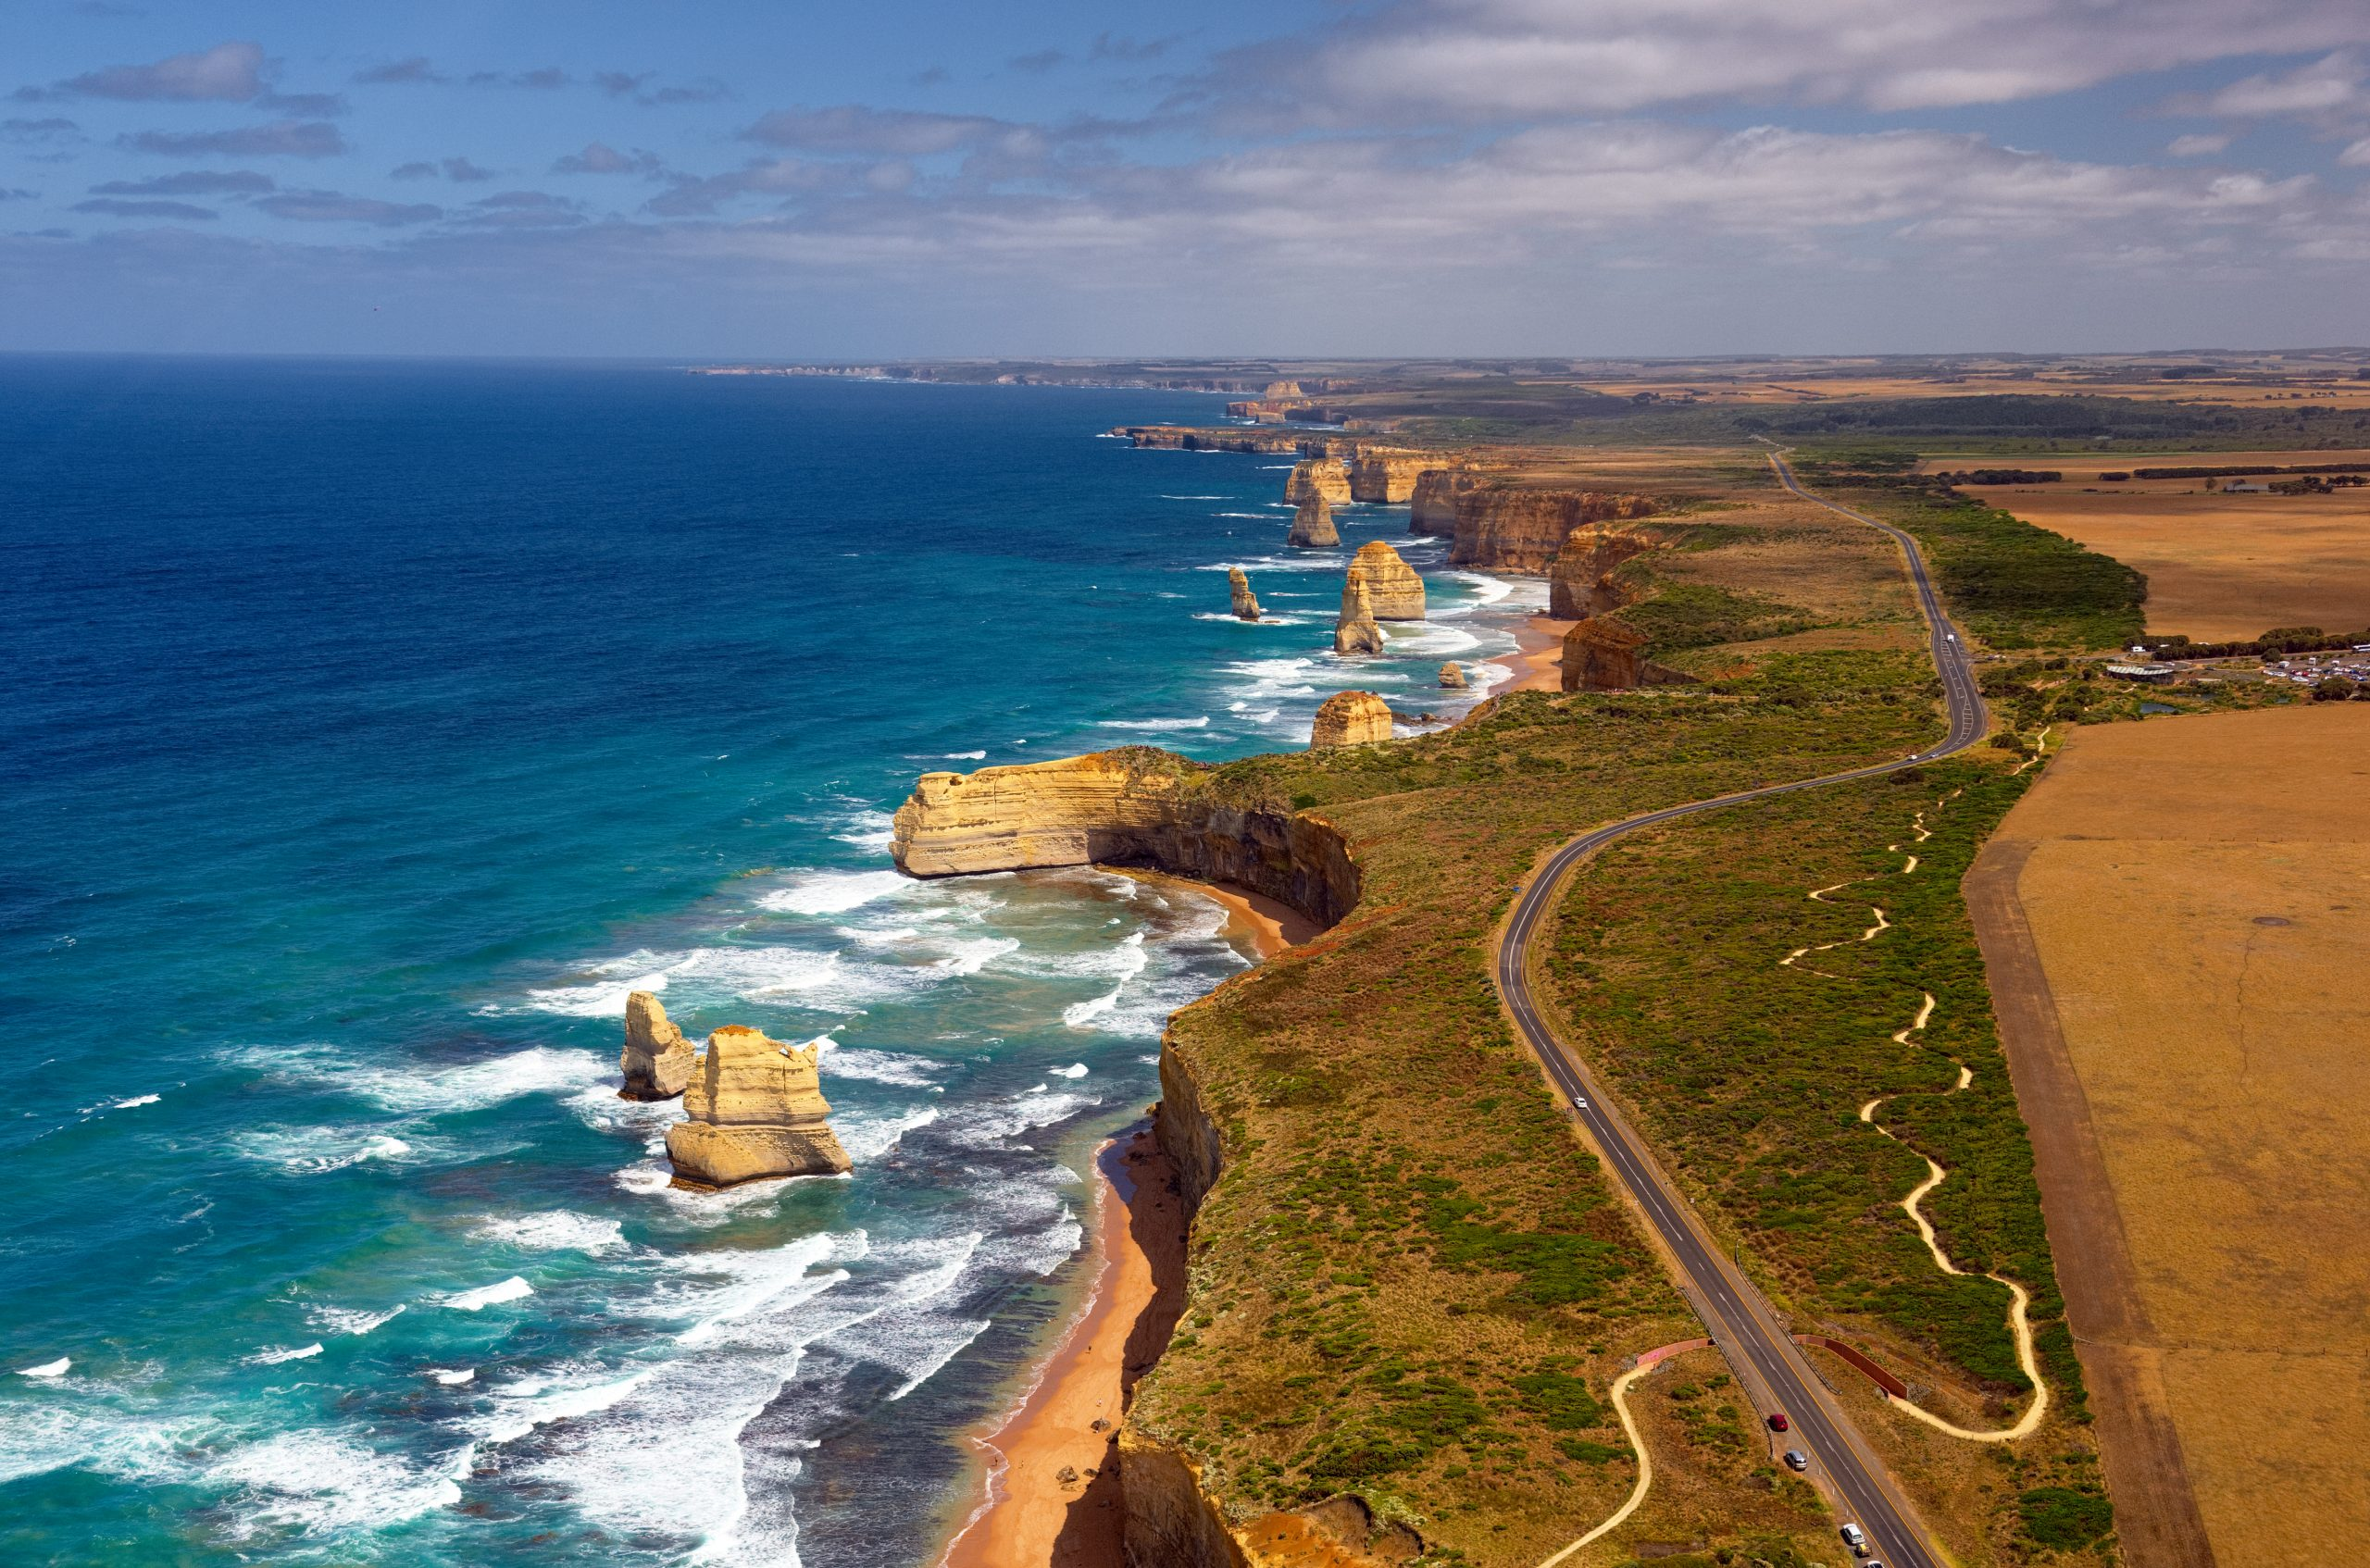 12 Apostles flight aerial image departing from Tiger Moth World, Torquay Airport, Torquay, Great Ocean Road near Melbourne